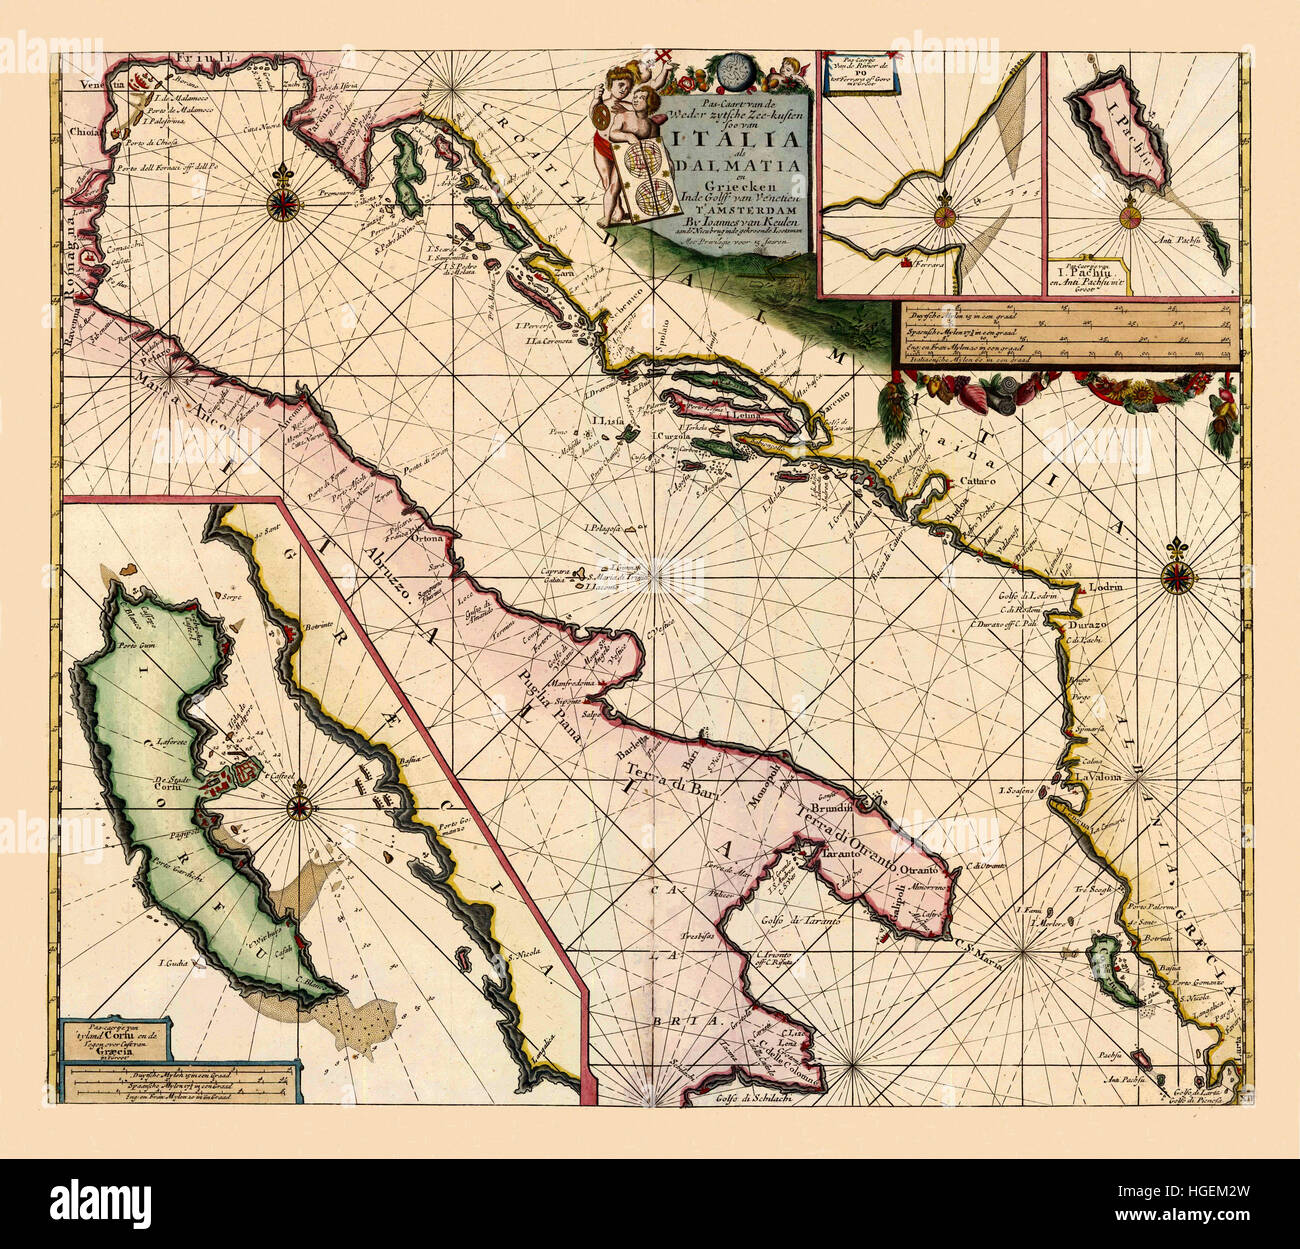 Map Of The Adriatic Sea 1700 - Stock Image